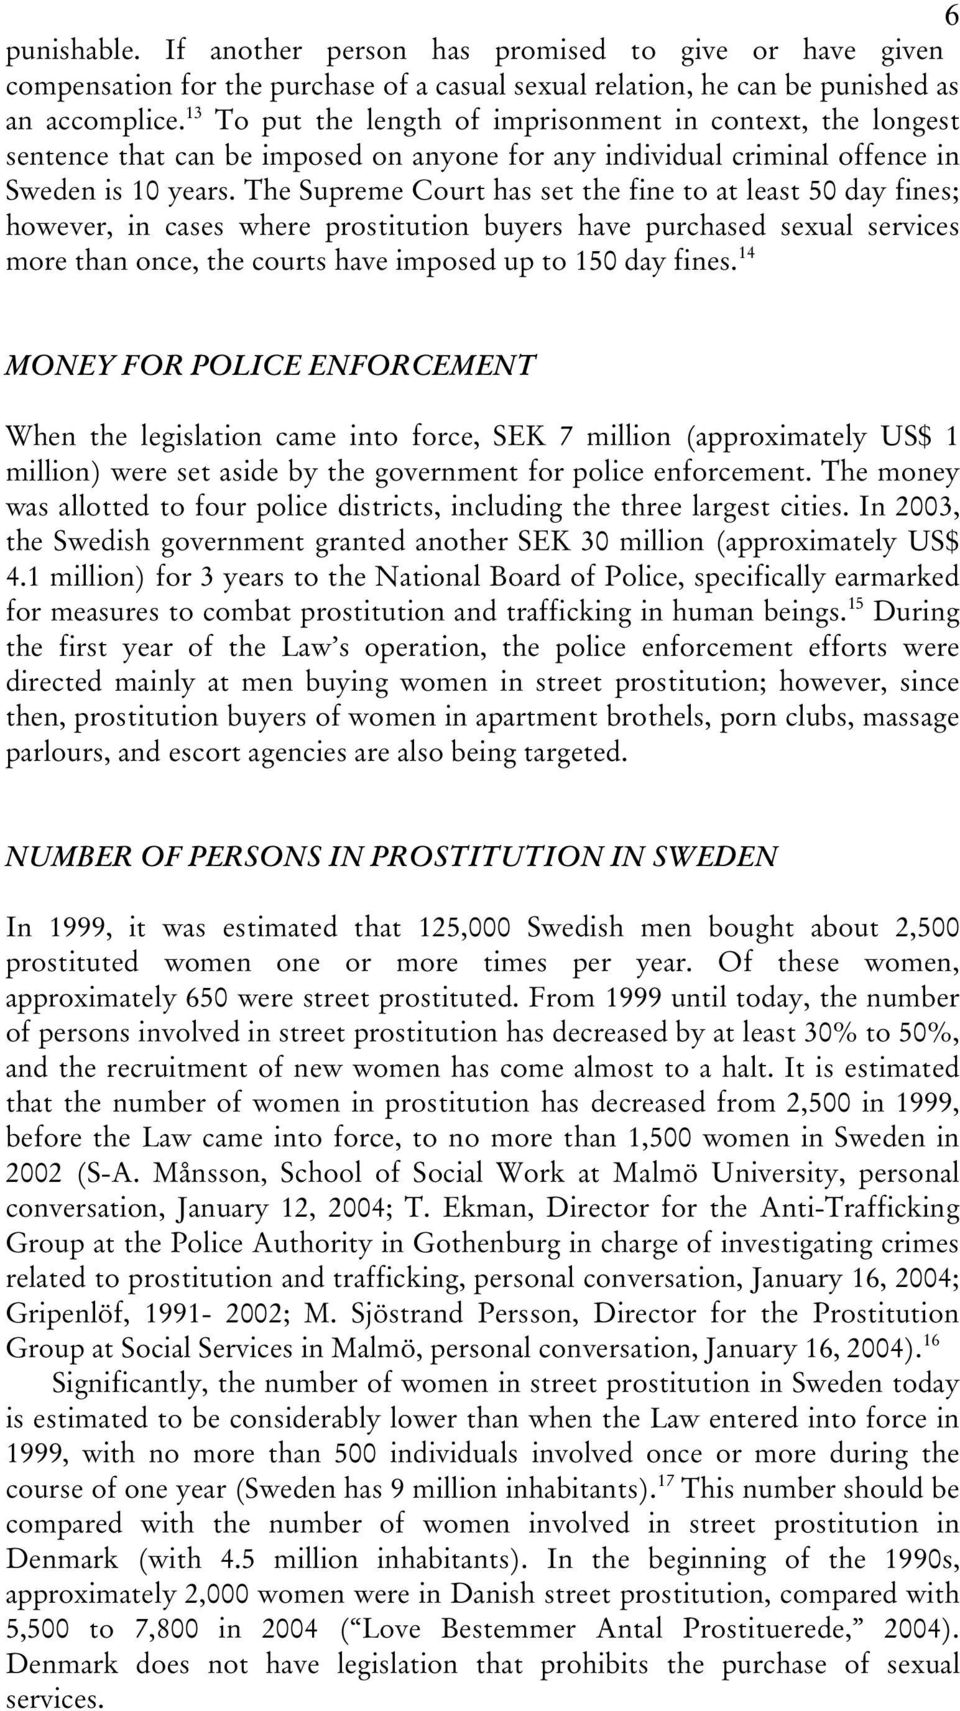 The Supreme Court has set the fine to at least 50 day fines; however, in cases where prostitution buyers have purchased sexual services more than once, the courts have imposed up to 150 day fines.